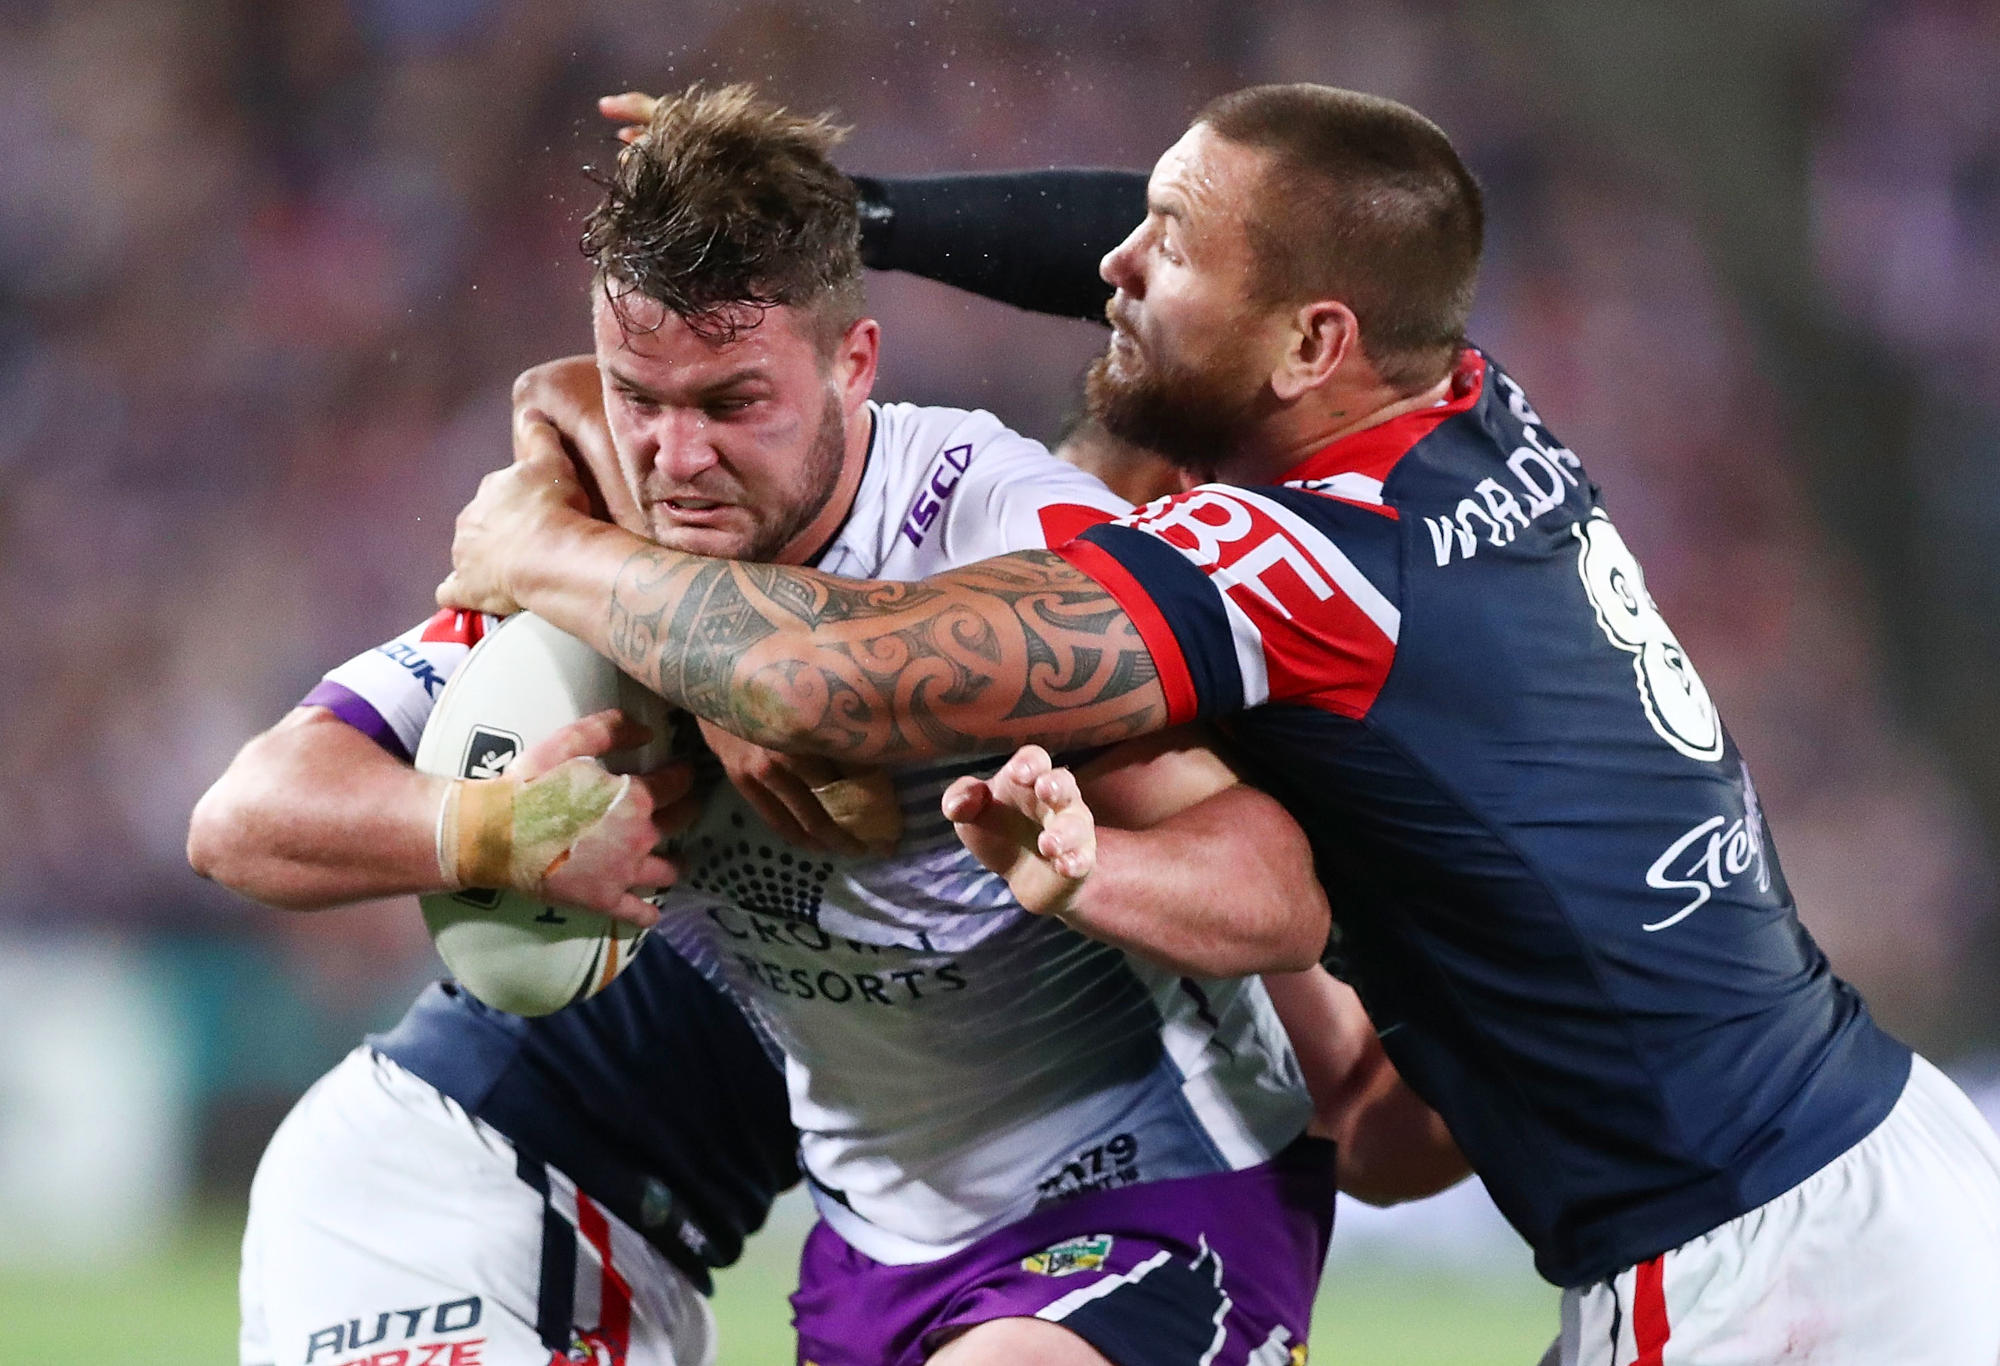 Joe Stimson of the Storm is tackled during the 2018 NRL Grand Final.